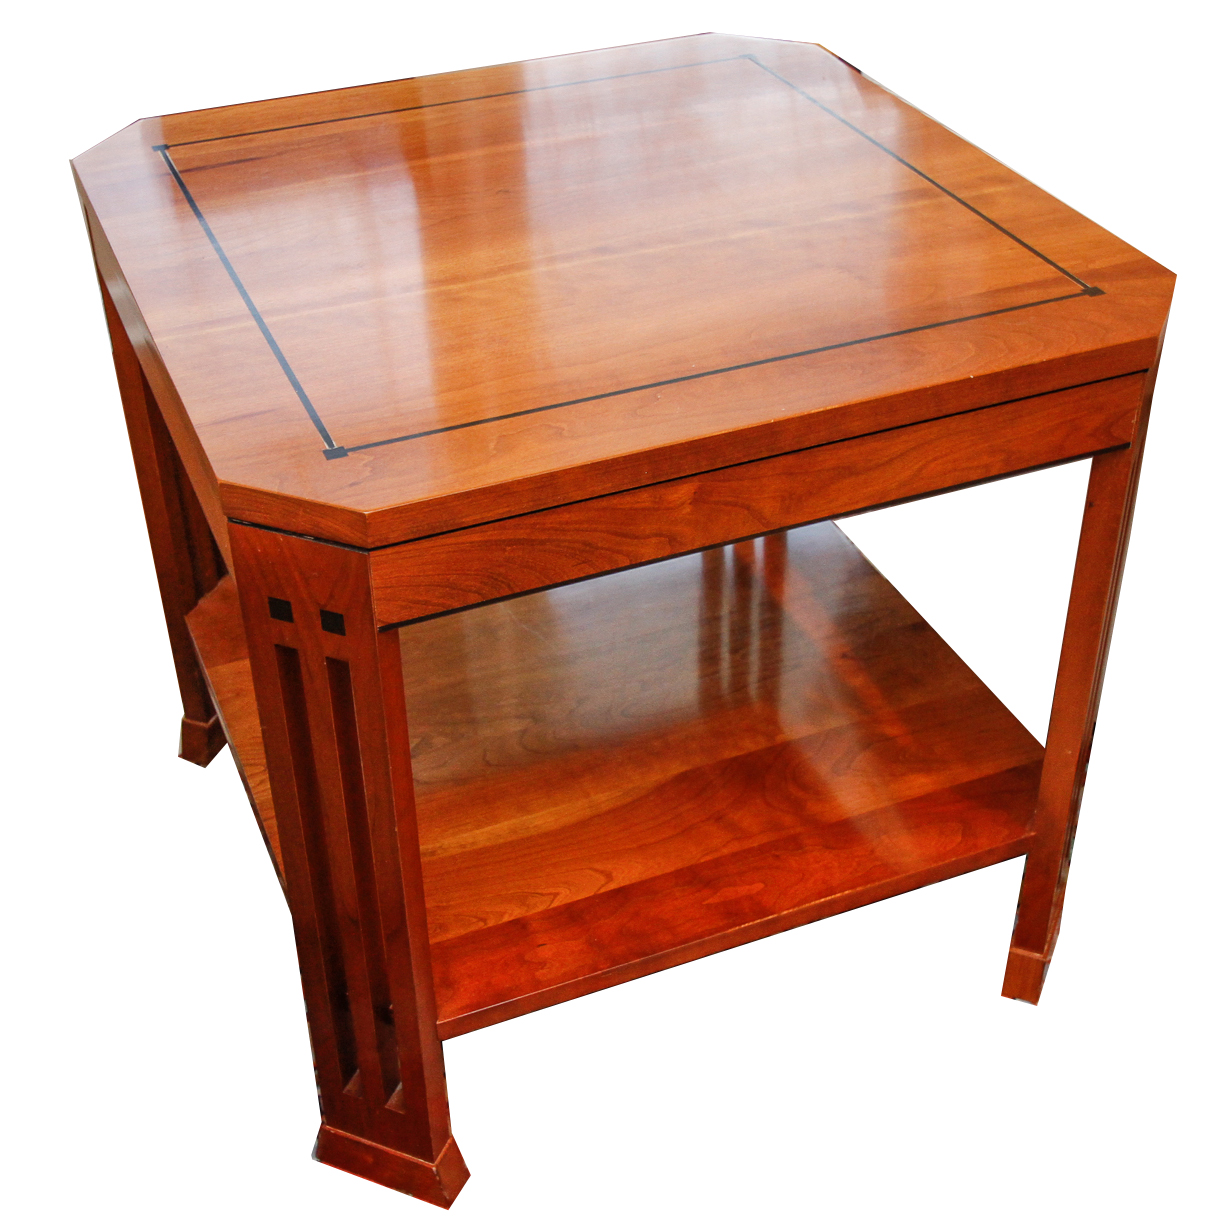 Stickley Furniture 21st Century Mission Cherry Side Table EBTH